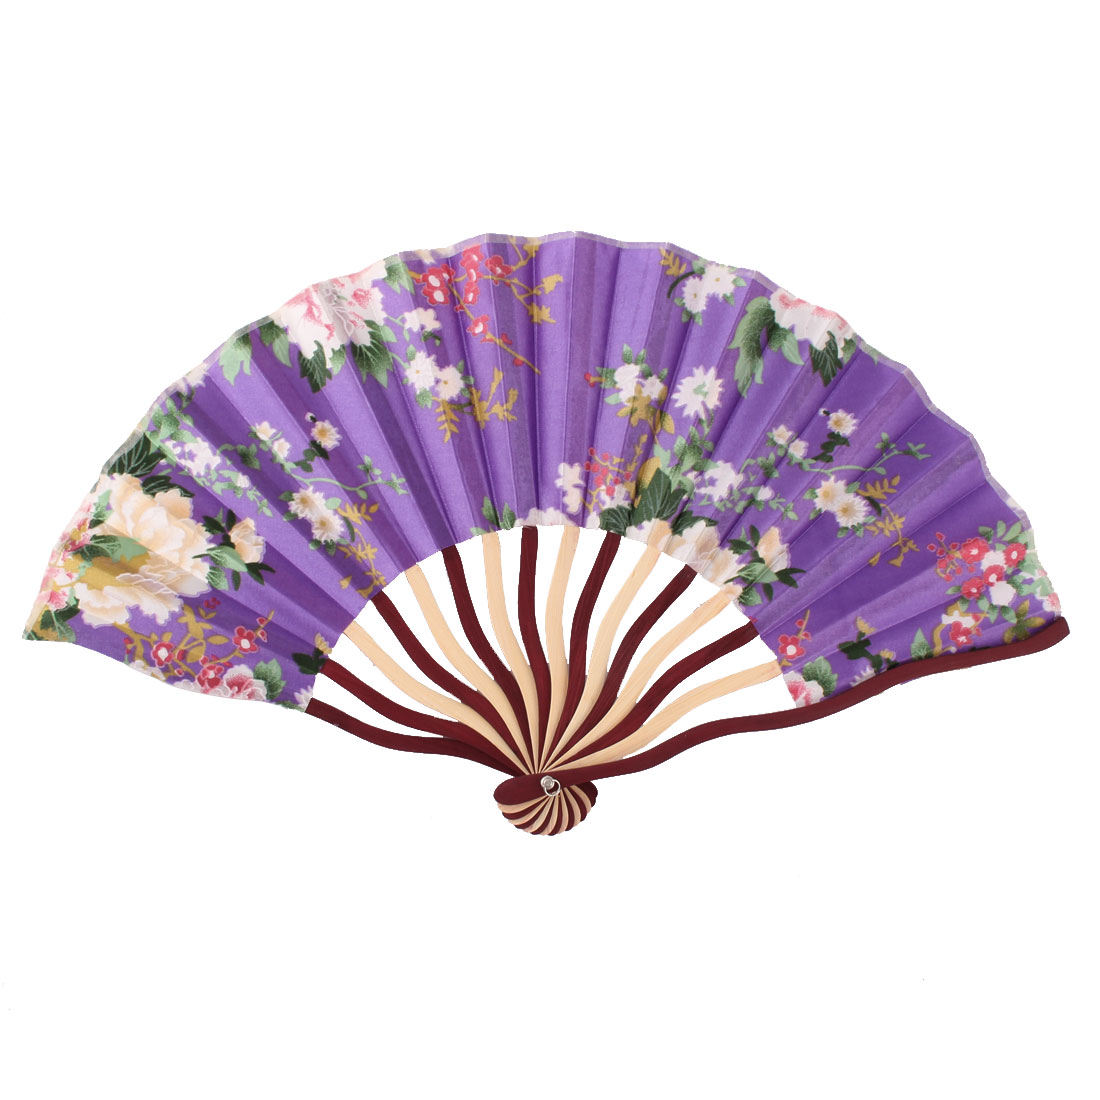 Lady Bamboo Ribs Peony Printed Chinese Style Hand Folding Cooling Fan Colorful